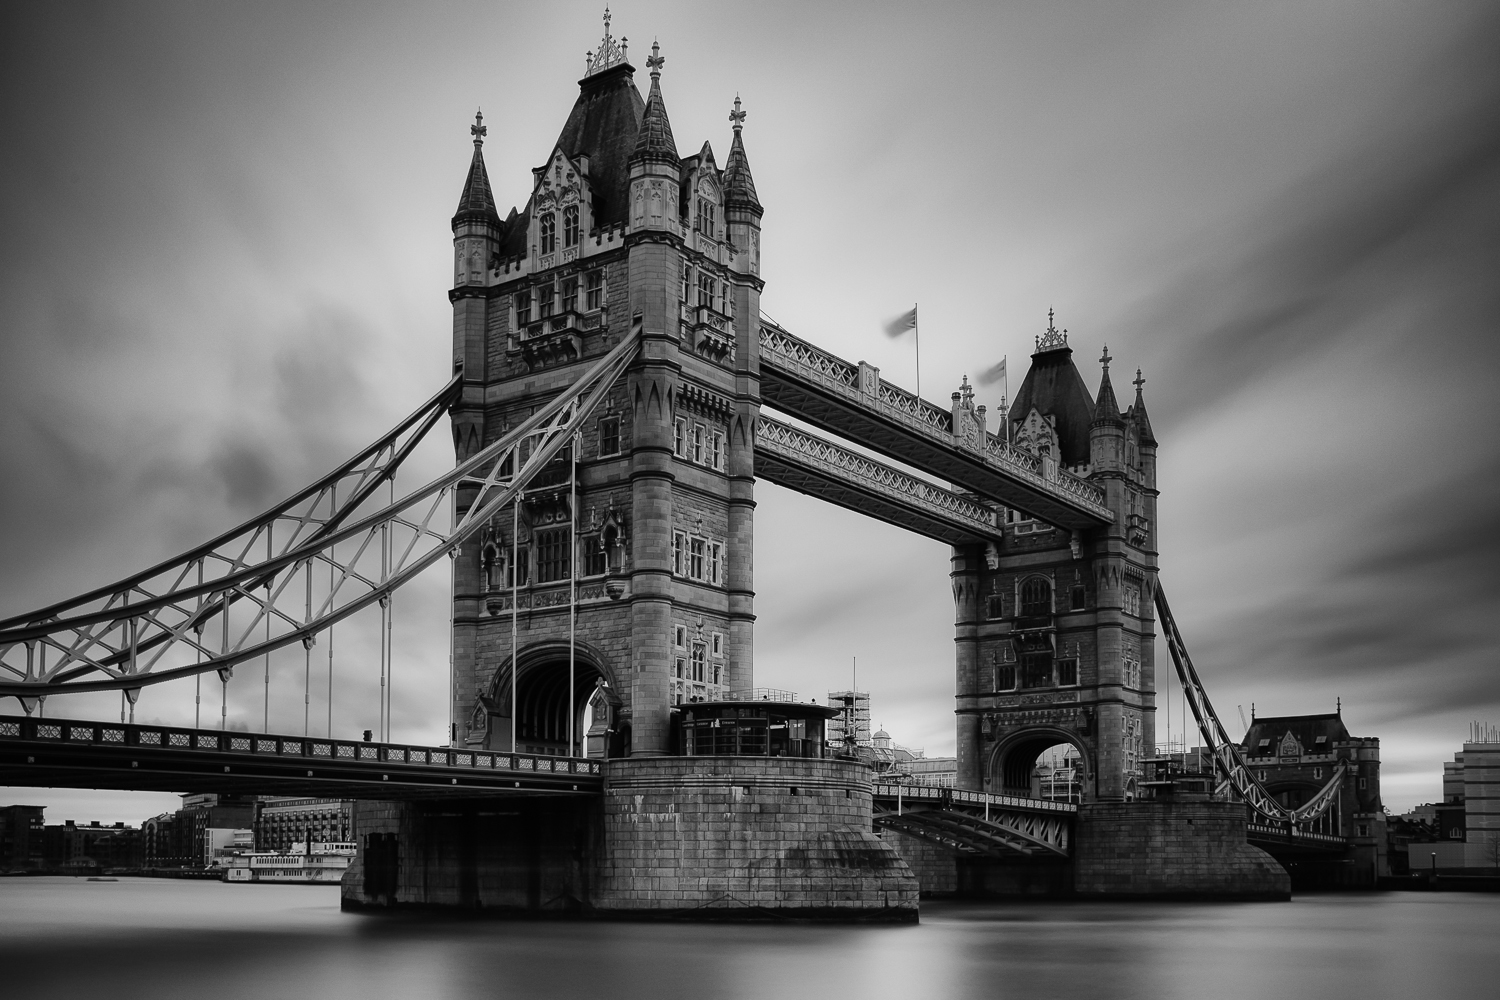 Tower Bridge - 240 seconds at f/8